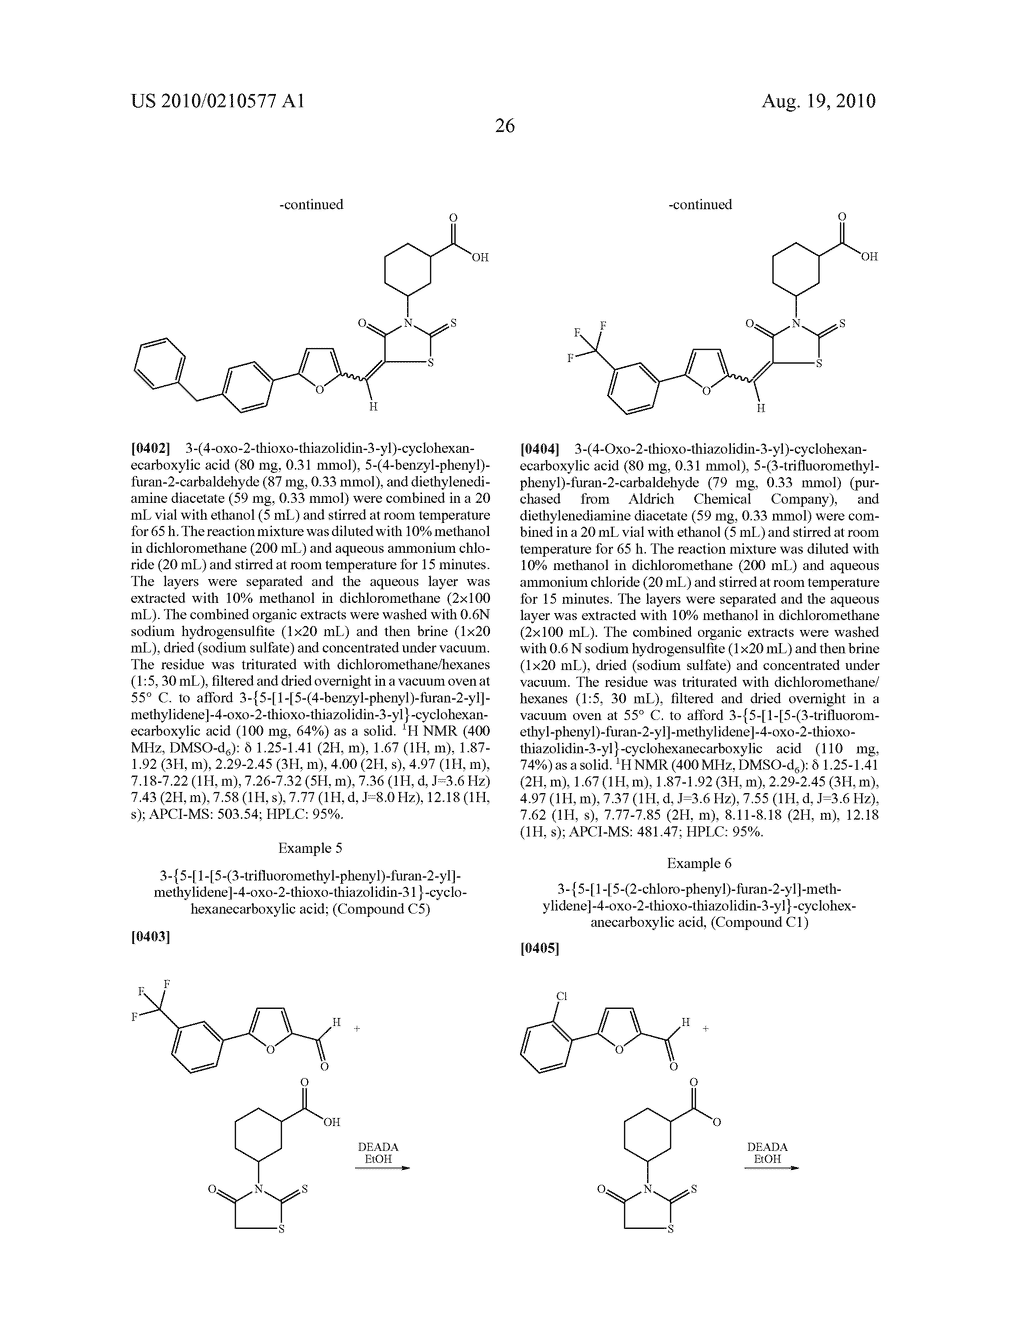 CYCLIC CARBOXYLIC ACID RHODANINE DERIVATIVES FOR THE TREATMENT AND PREVENTION OF TUBERCULOSIS - diagram, schematic, and image 36